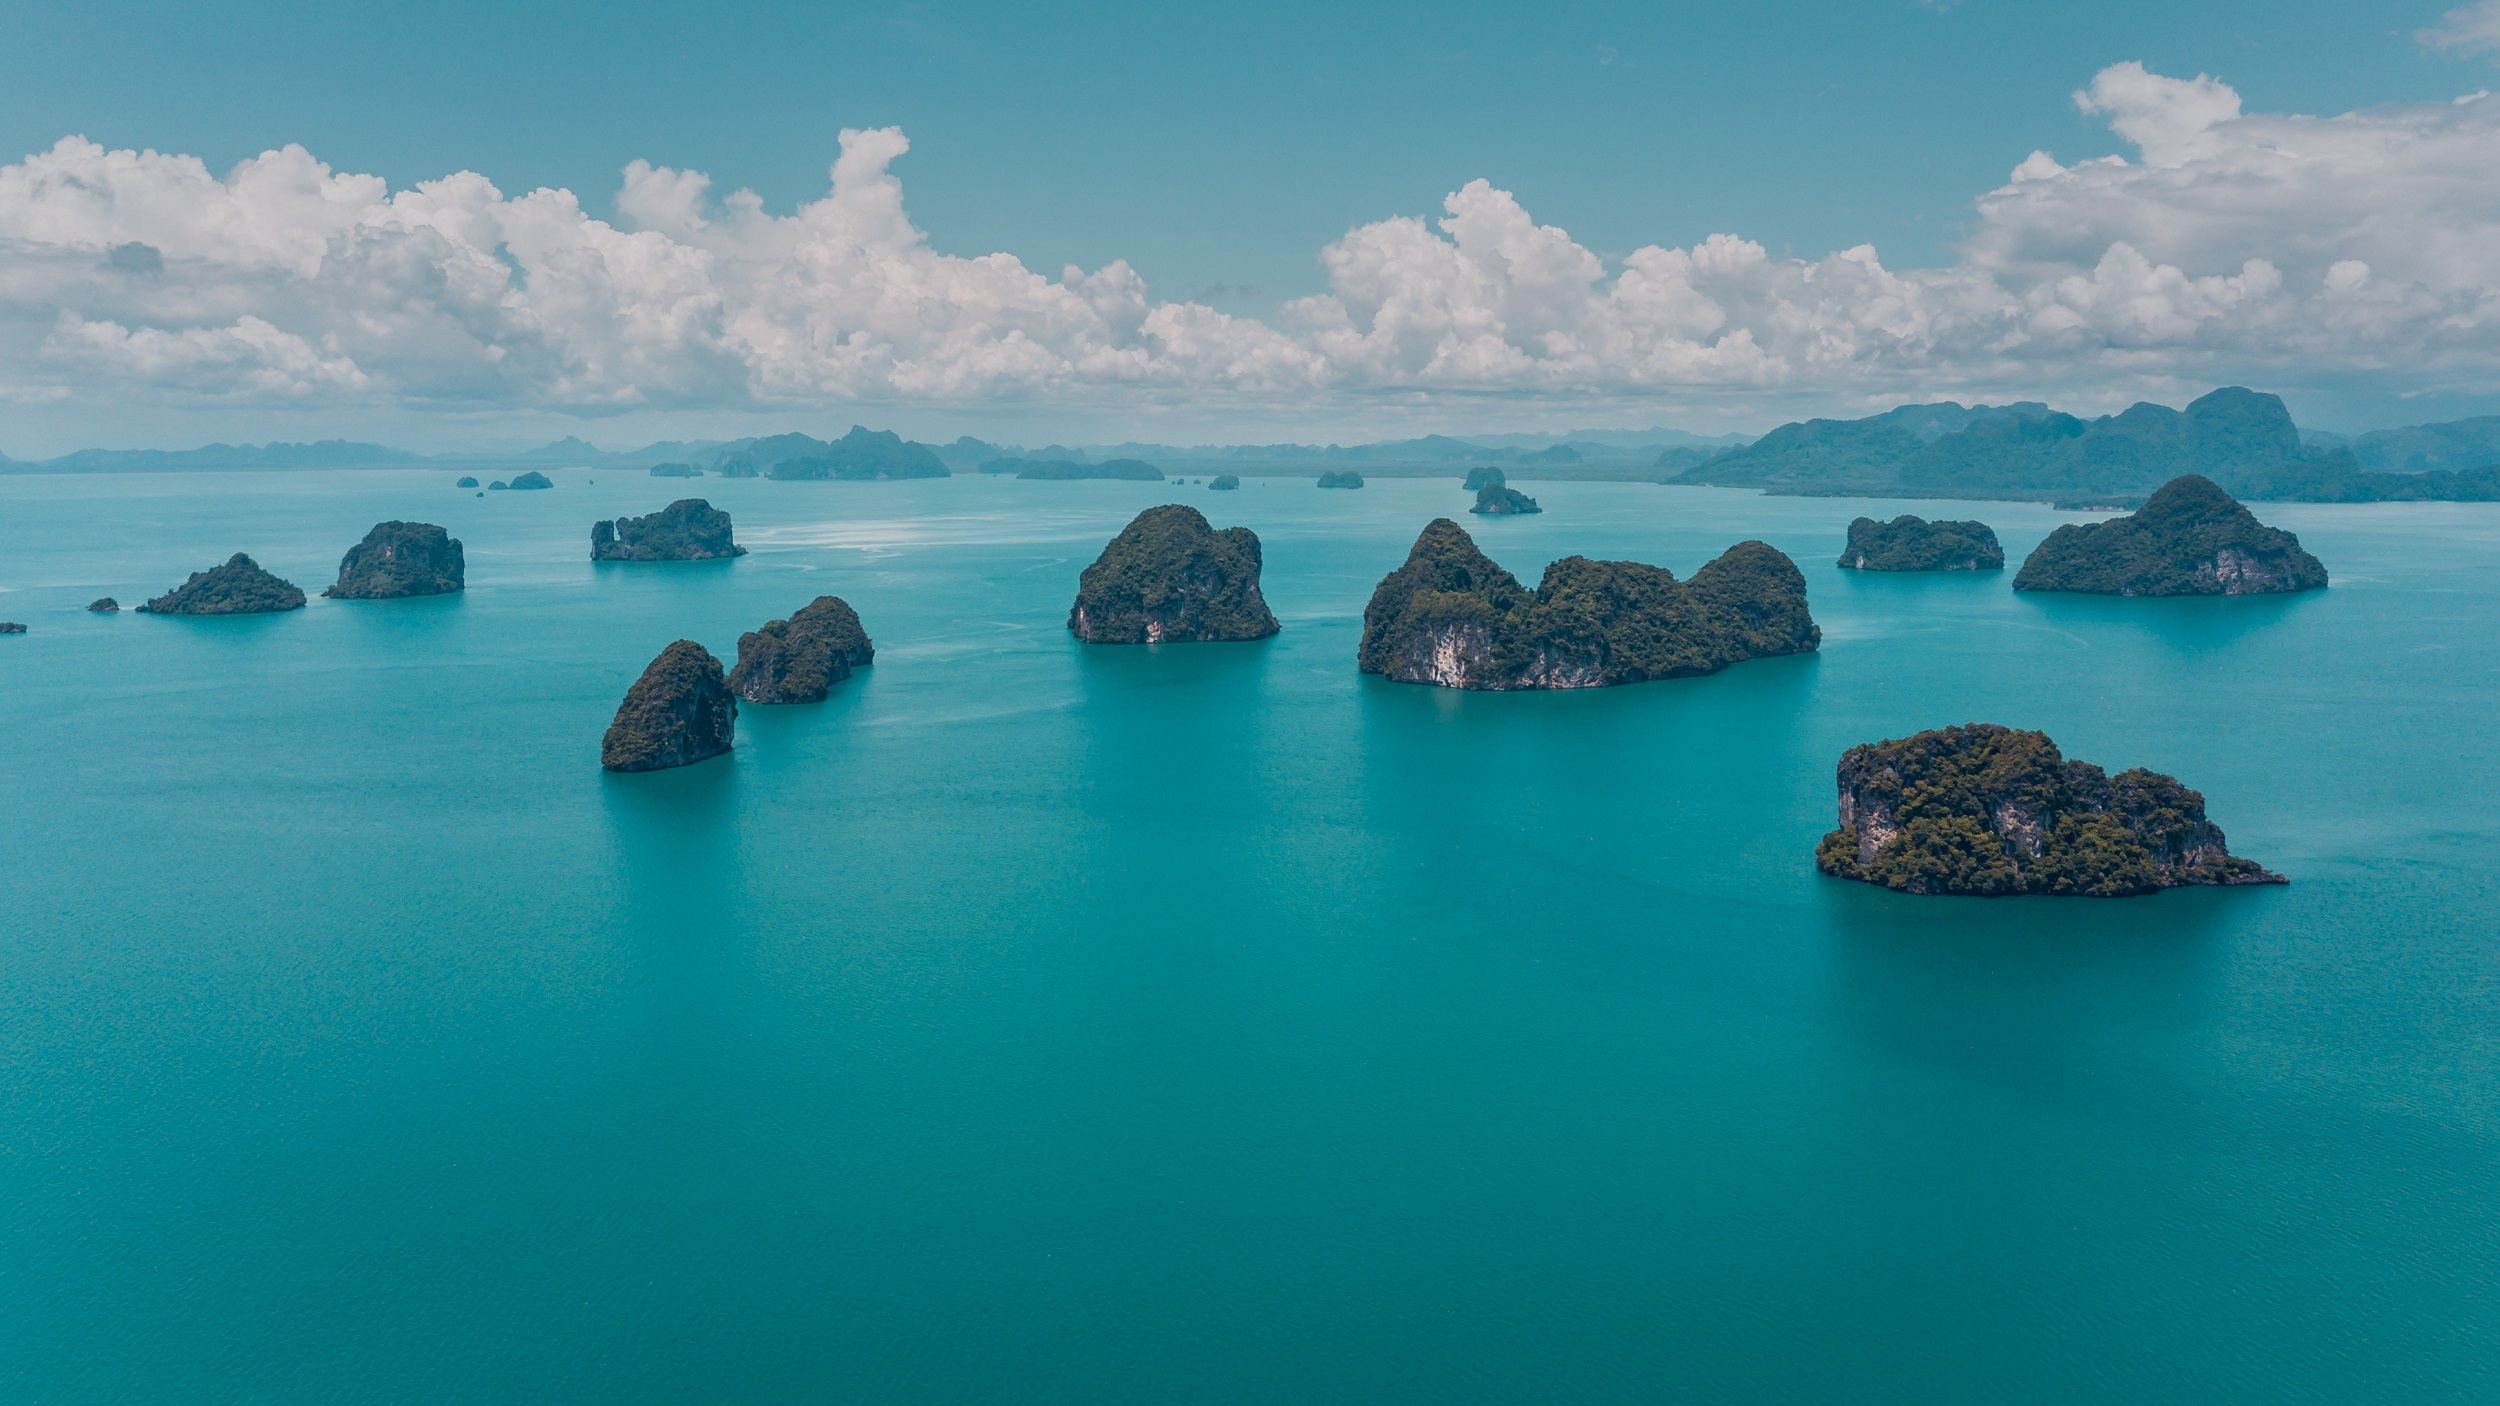 Group of small Thai islands